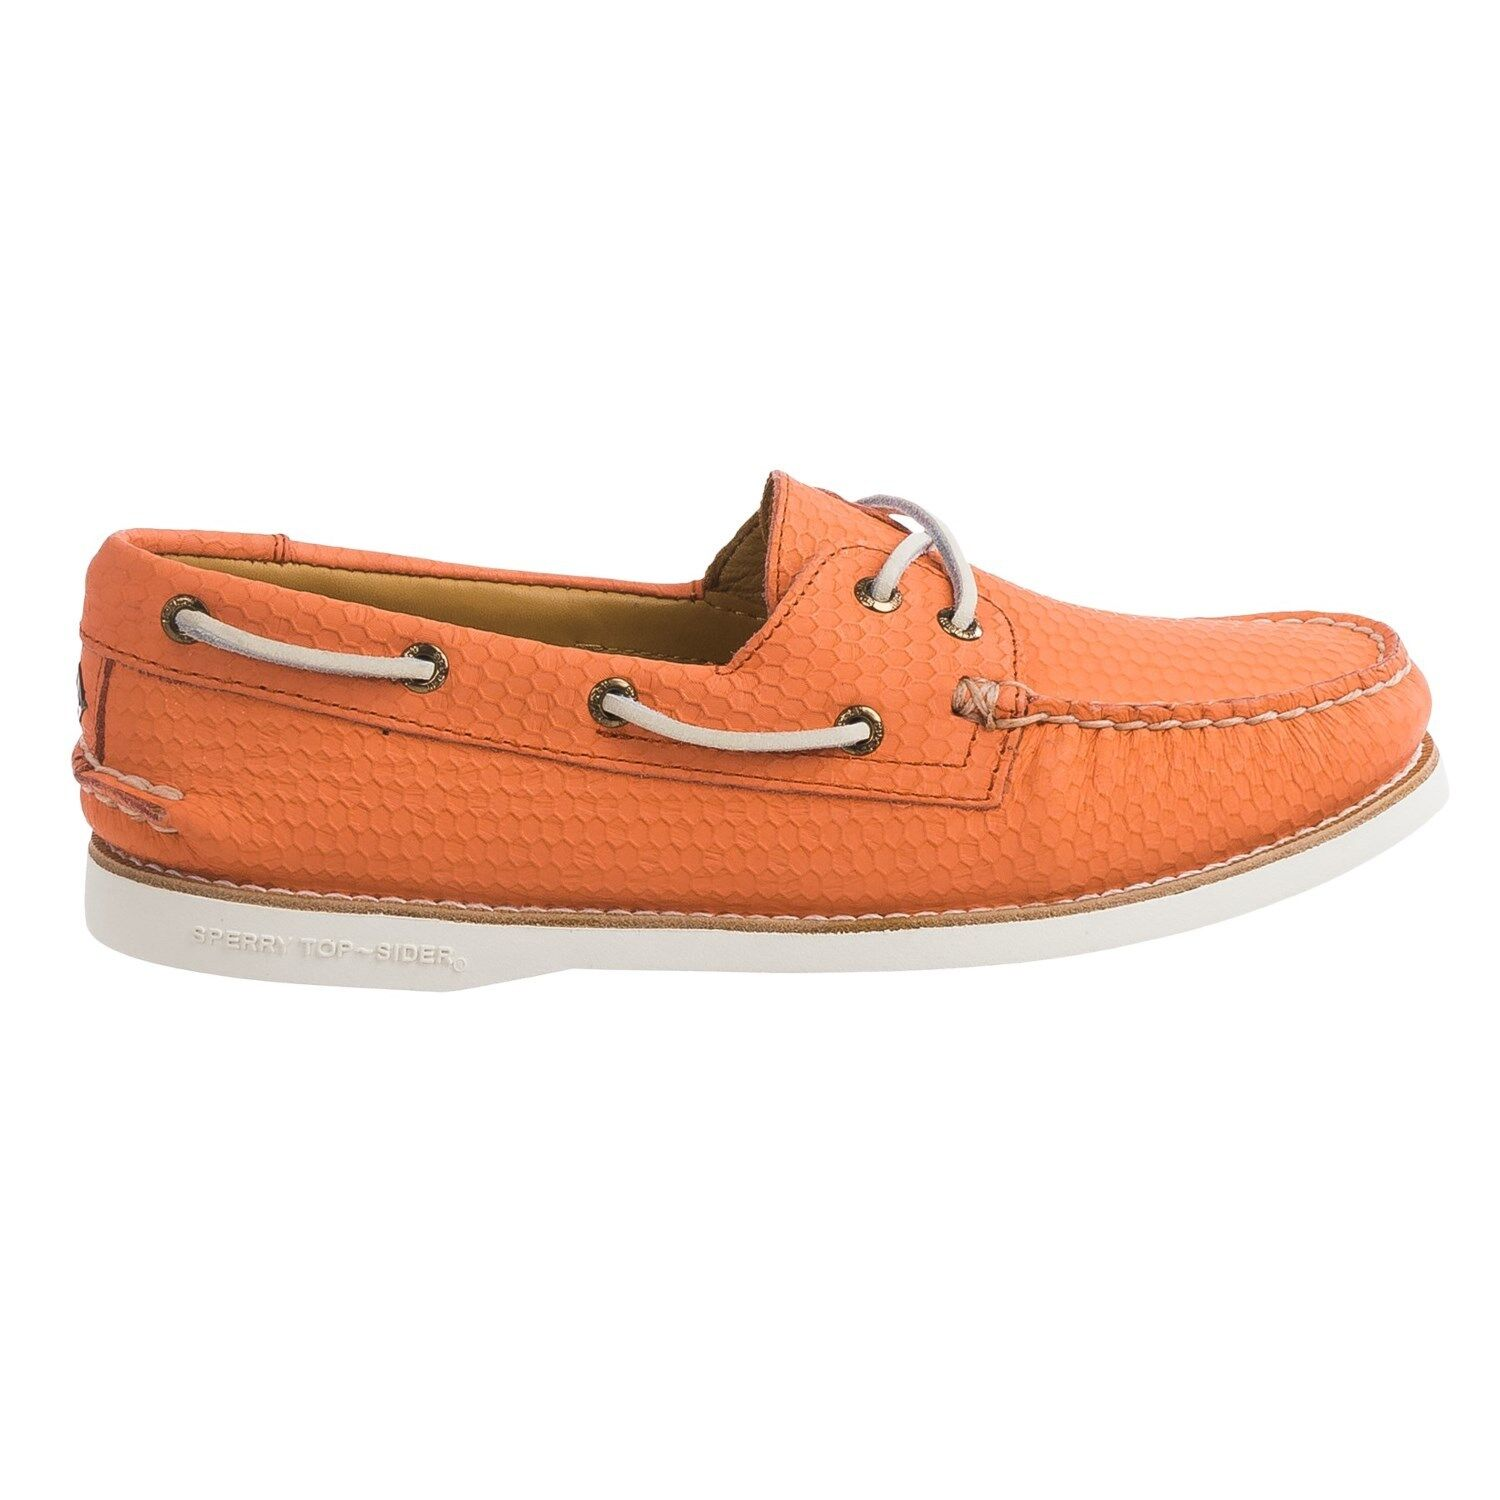 Sperry Donna Pelle Top-Sider Authentic Honeycomb Taglia 5 6 7 10 12